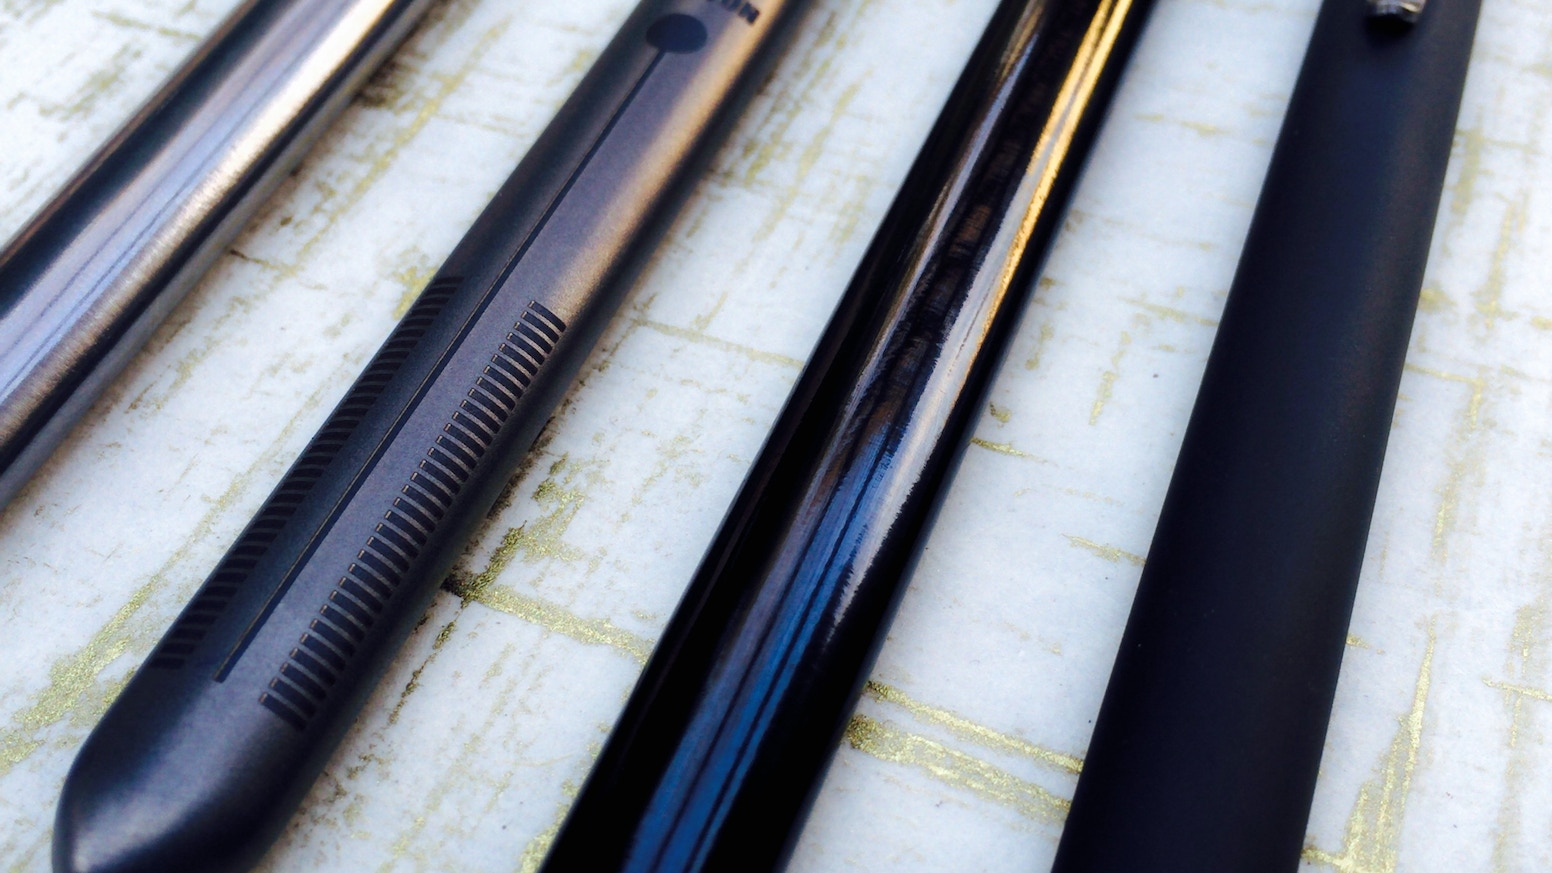 Oval Bolt Pen - slim and elegant - unique shape that allows the bolt to stay flush with the pen body - every part Titanium. (Pat Pen)